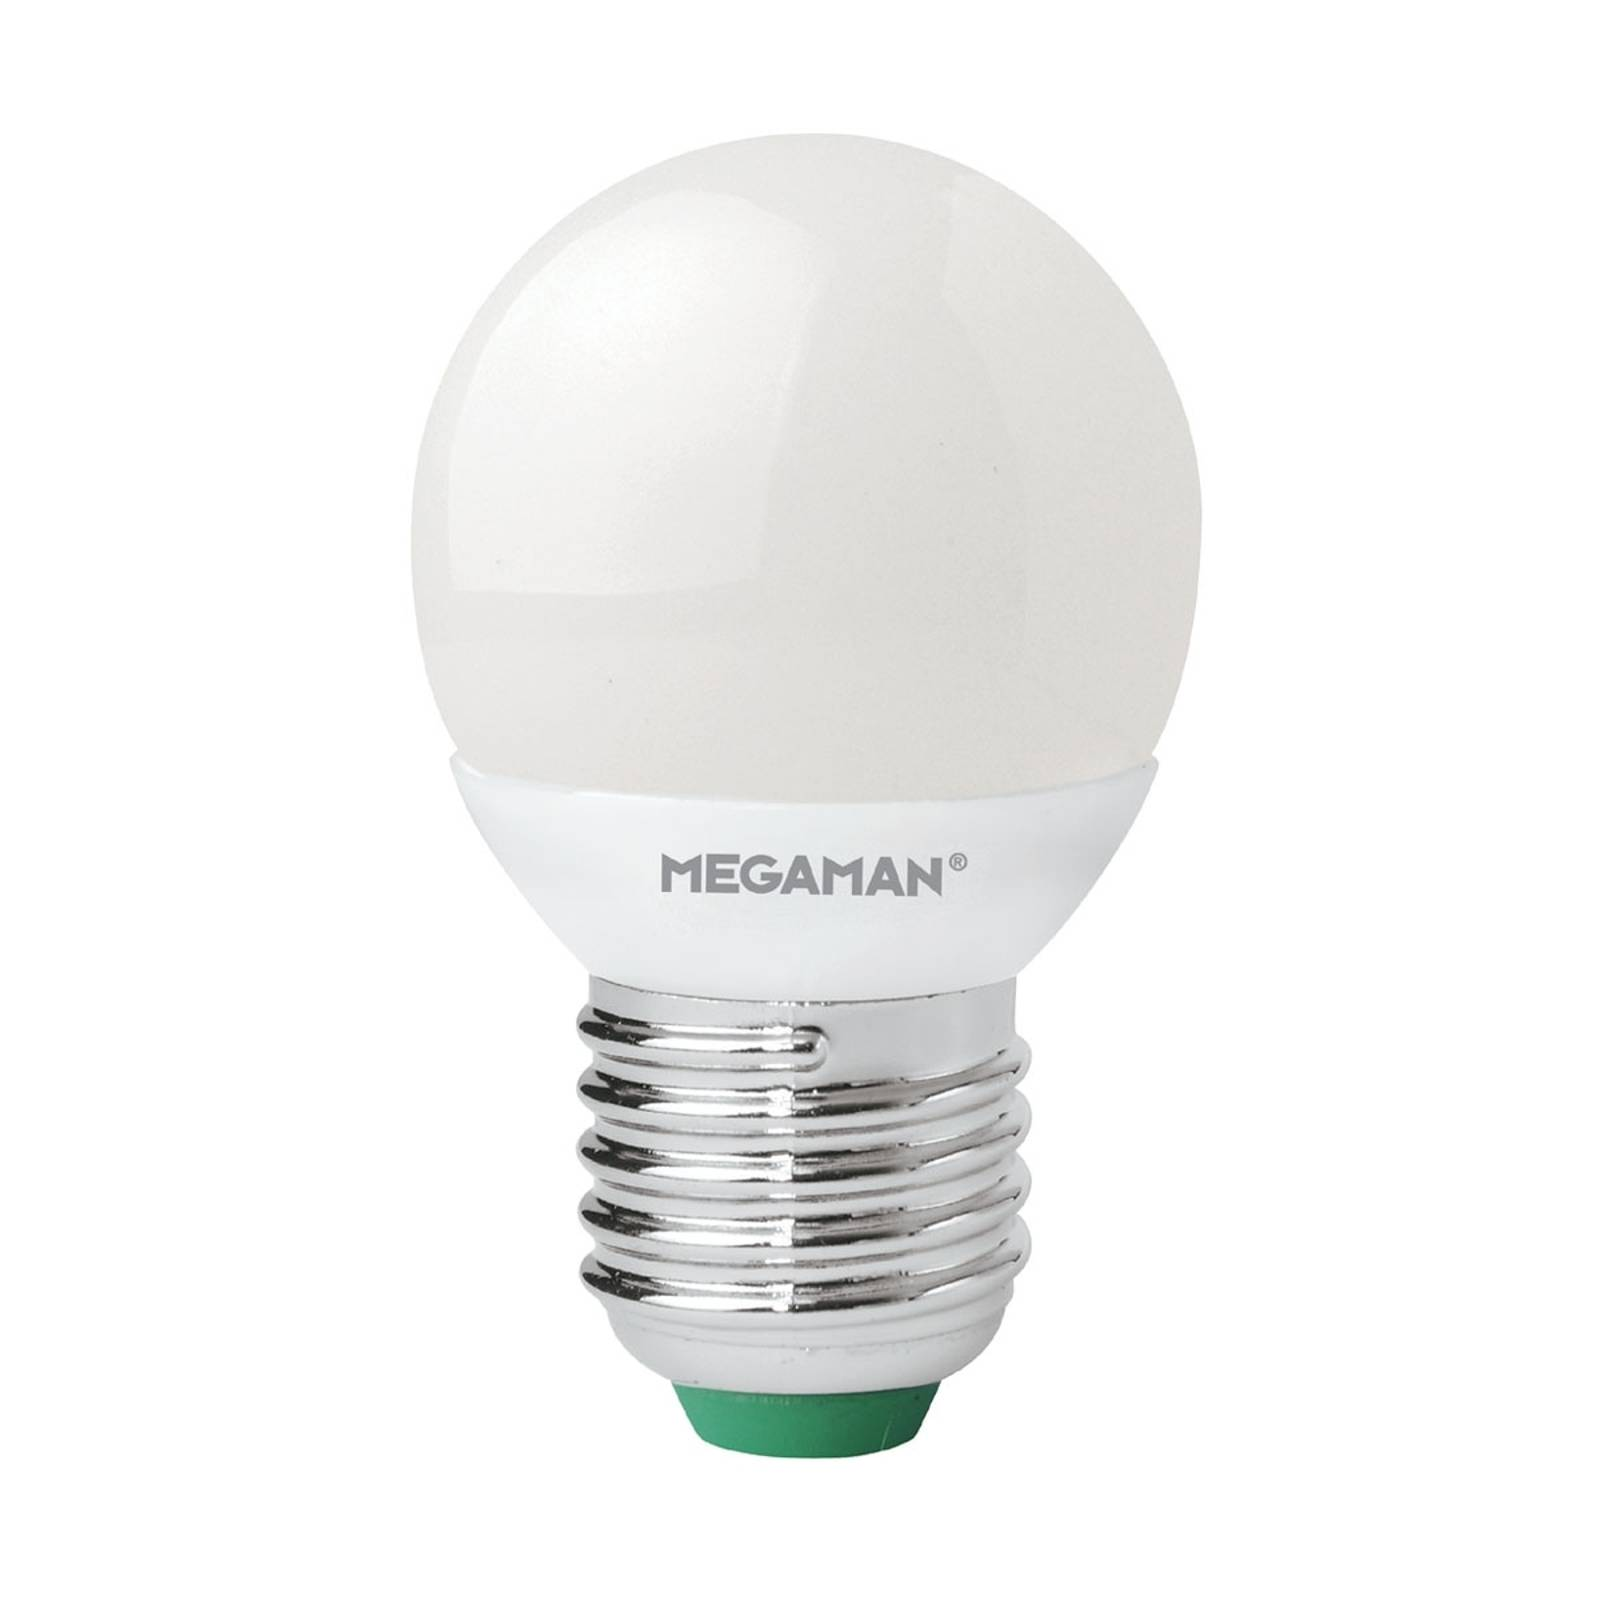 E27 3.5W LED tear bulb matte, 2800K from Megaman